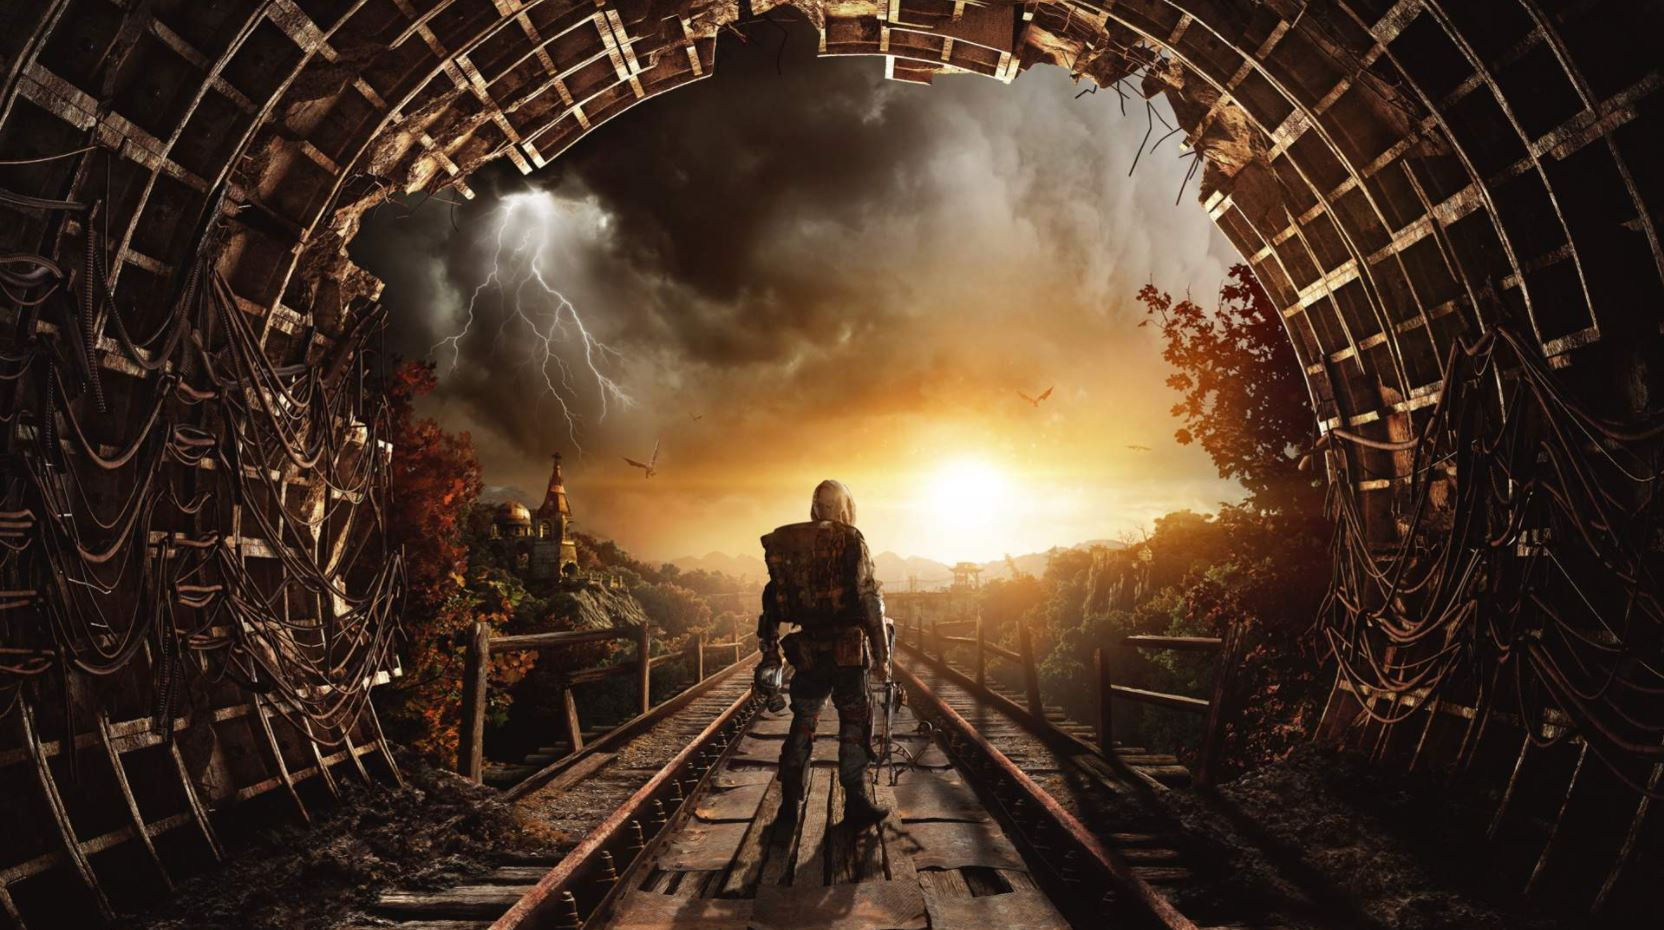 metro-exodus-ps5-upgrades-detailed-4k-textures-fully-ray-traced-lighting-dualsense-support-and-more-1